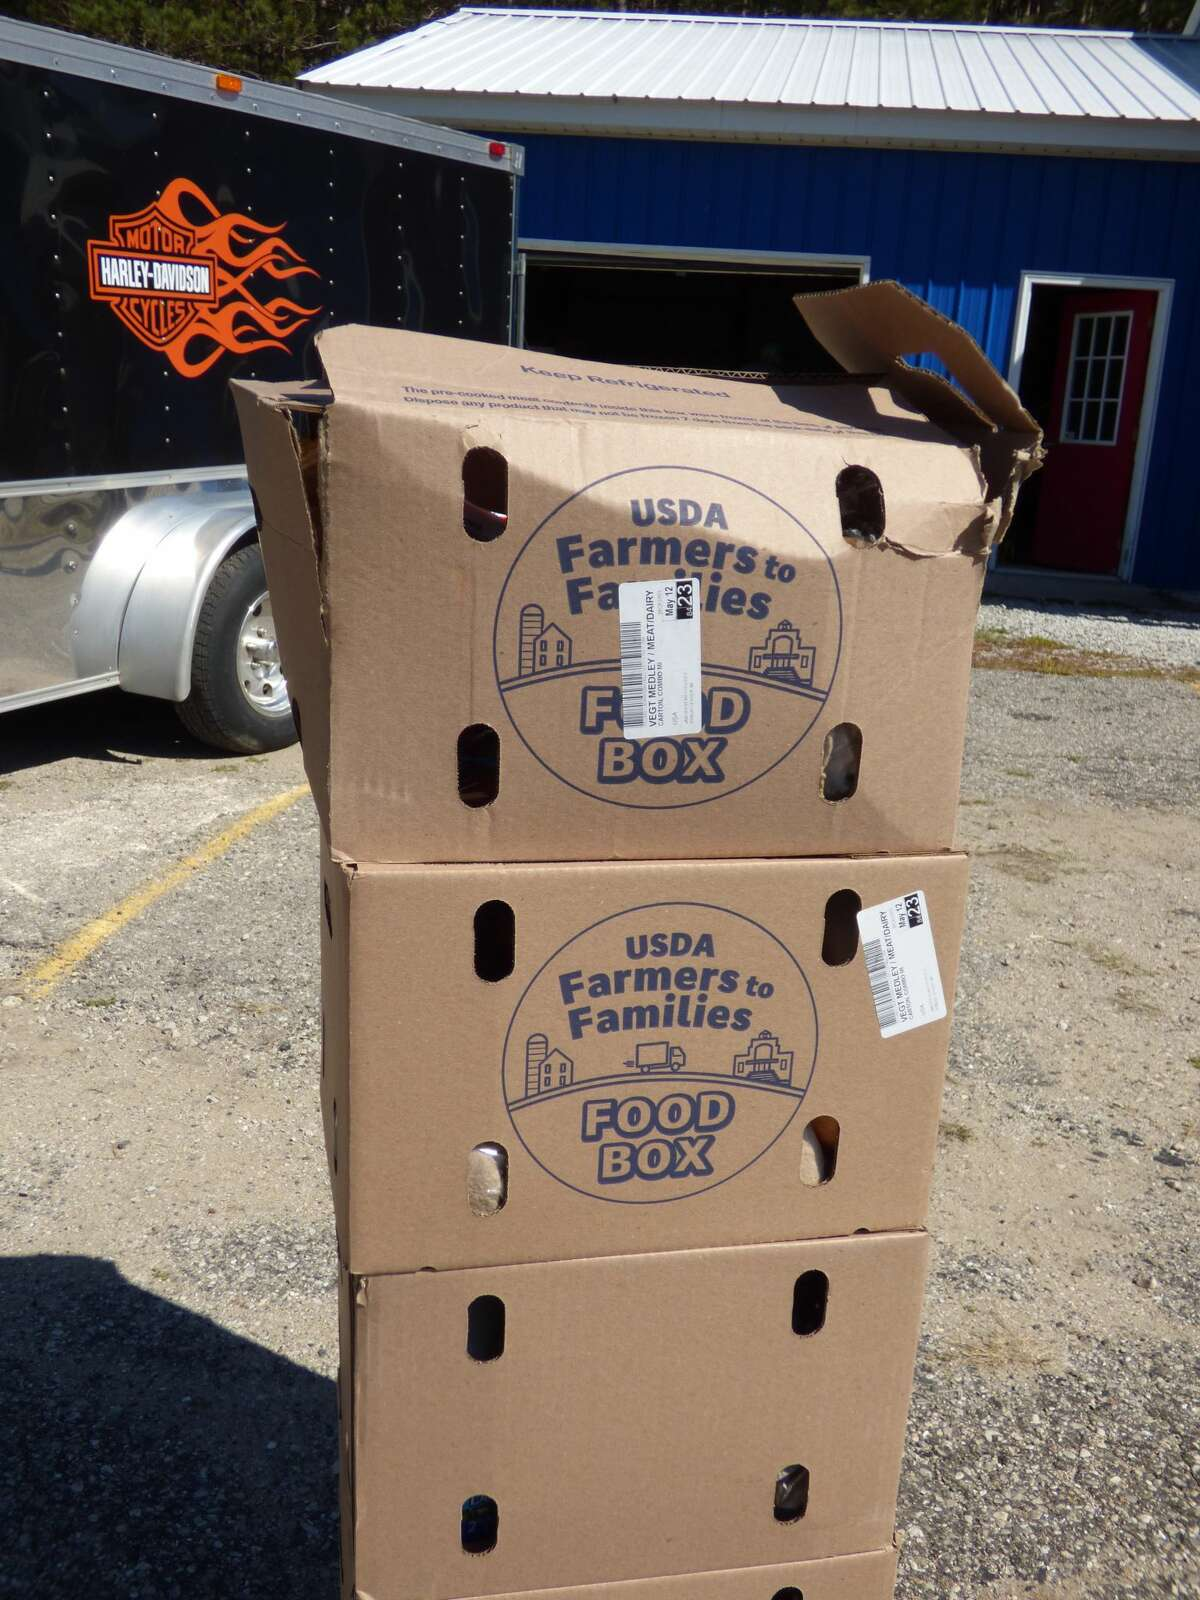 Boxes of fresh food through the USDA Farmers to Families program were distributed Thursday at Kaleva VFW #6333.